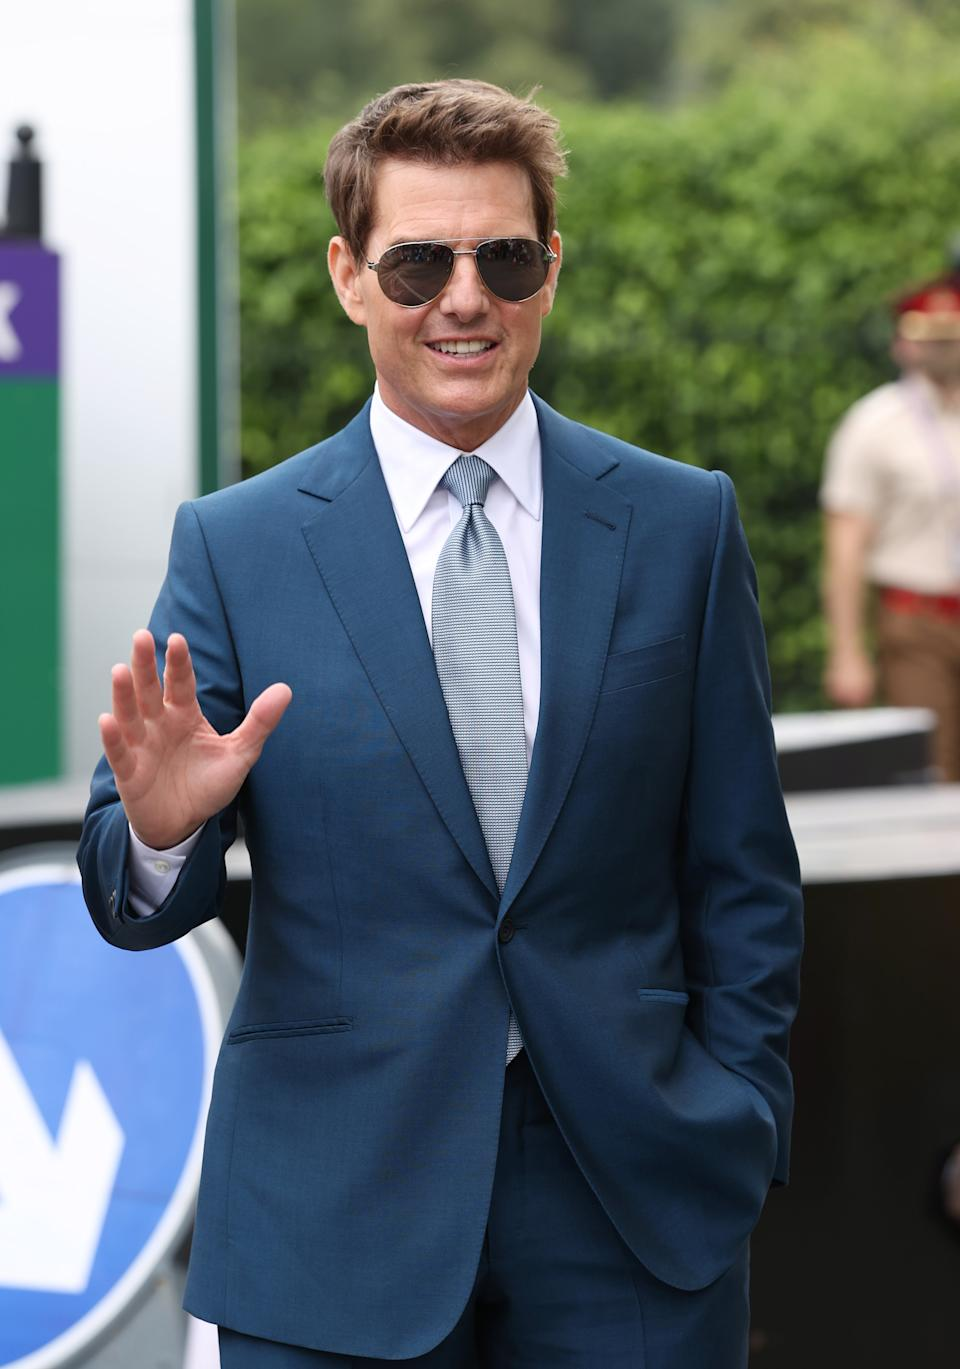 LONDON, ENGLAND - JULY 11: Tom Cruise attends day 13 of the Wimbledon Tennis Championships at All England Lawn Tennis and Croquet Club on July 11, 2021 in London, England. (Photo by Karwai Tang/WireImage)